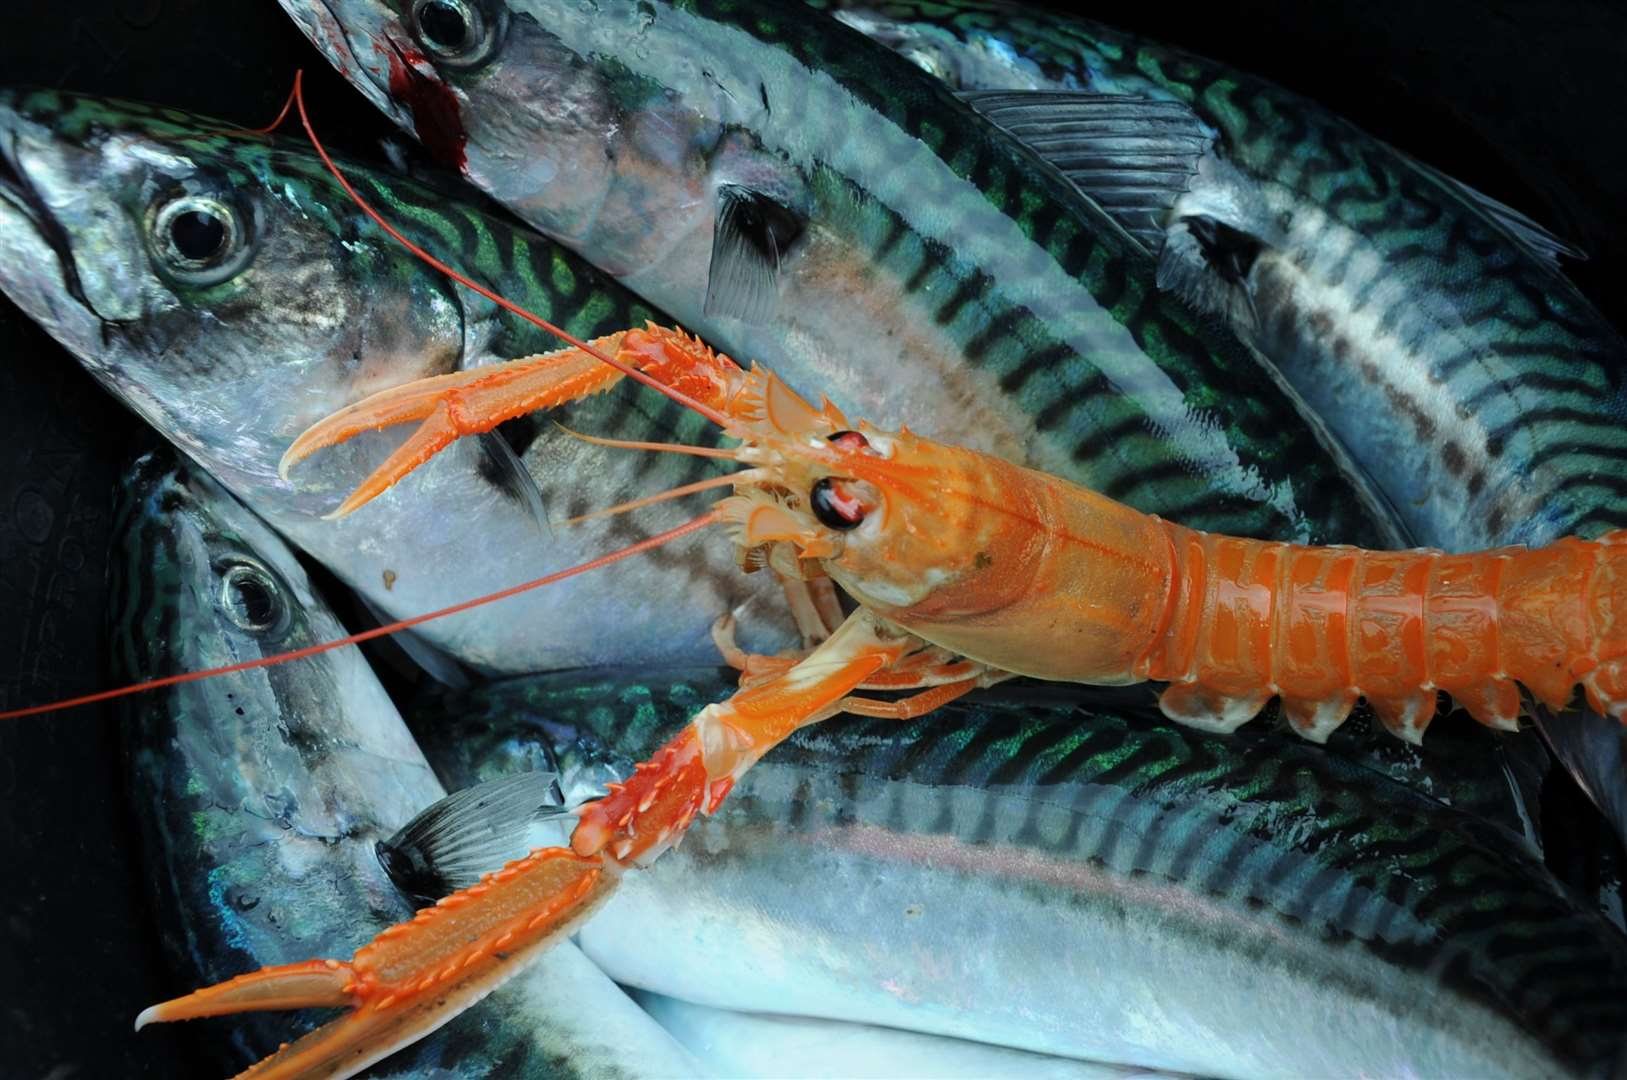 The Scottish seafood sector is reported to be losing £1 million a day.